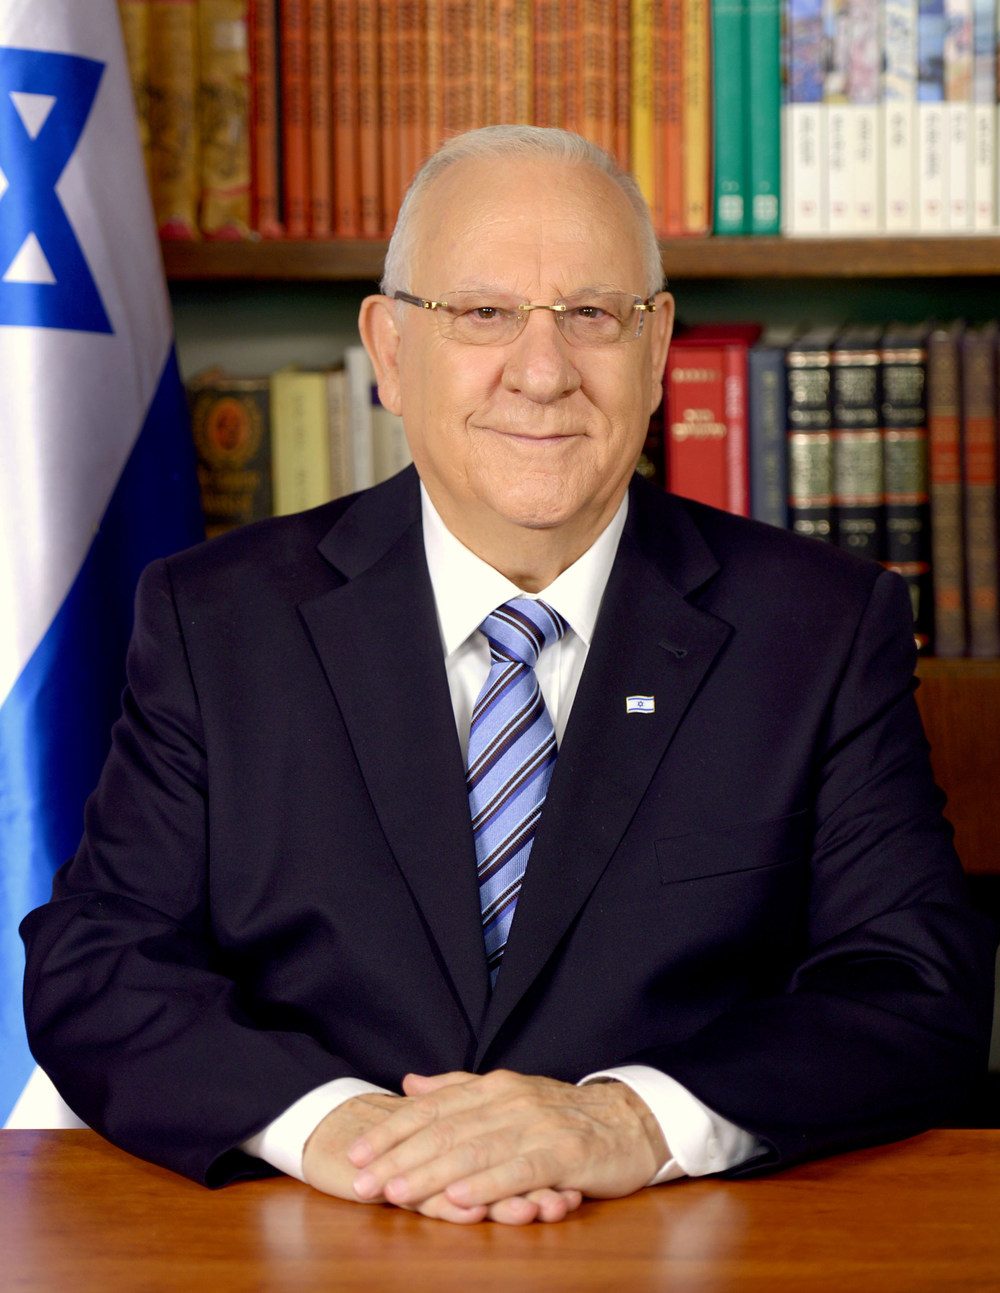 The President of Israel Reuven Rivlin. Credit: Wikimedia Commons.